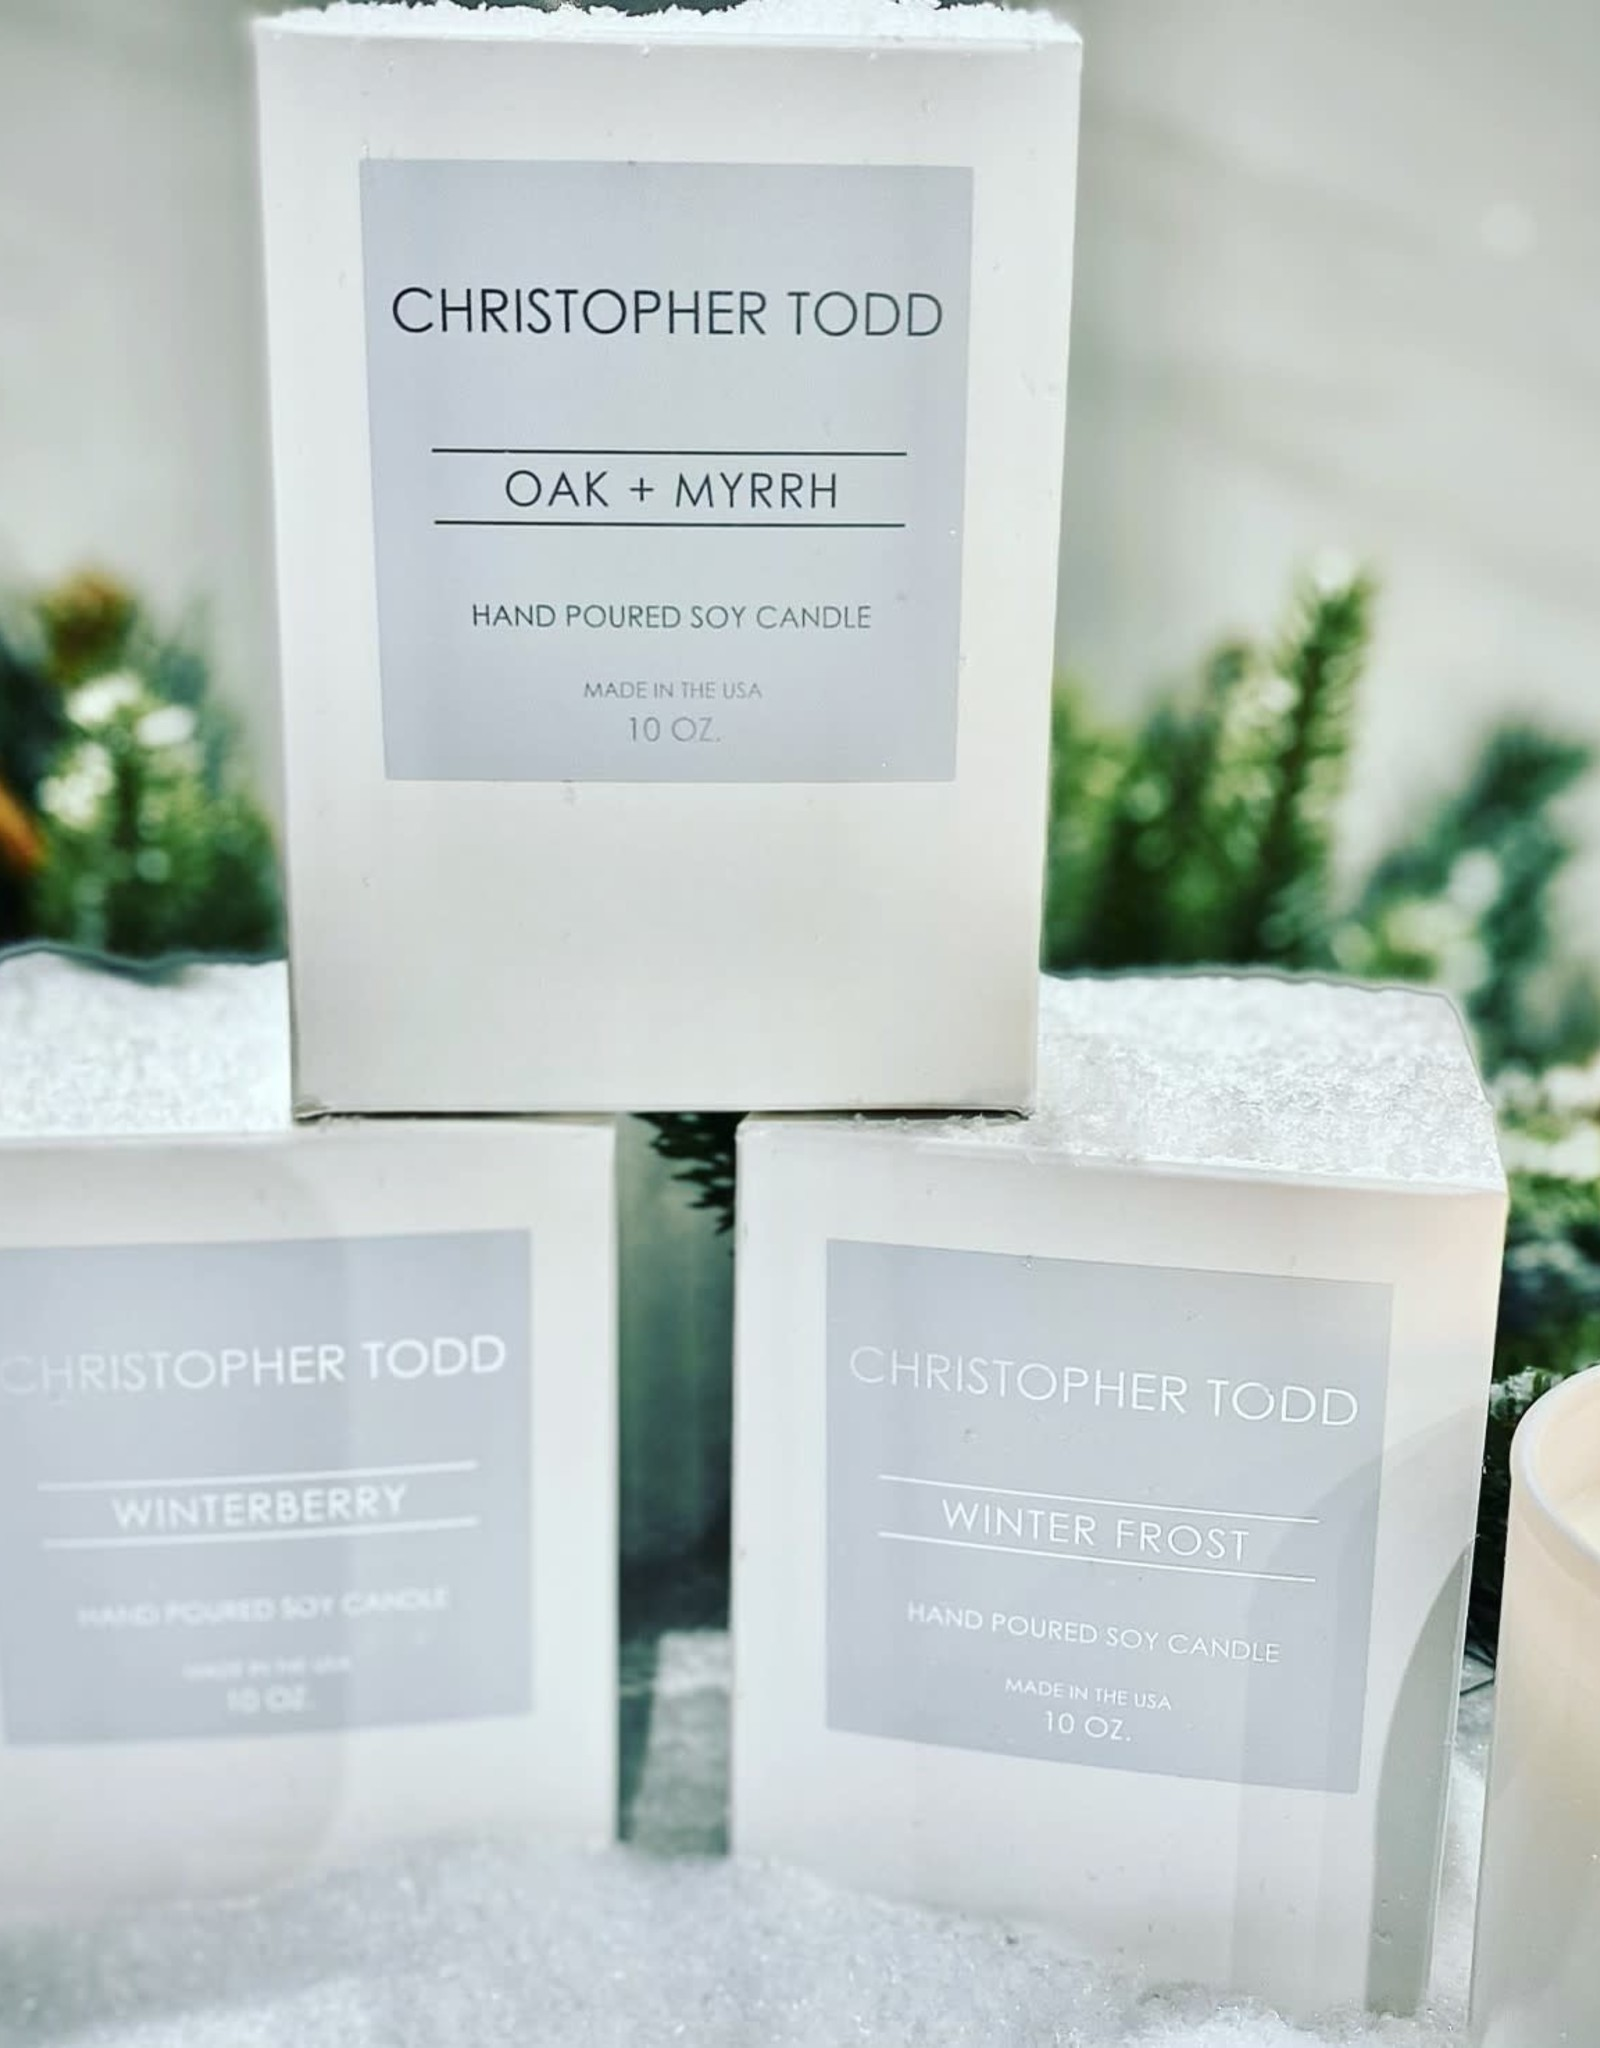 GP-Co Winterberry Christopher Todd Candle